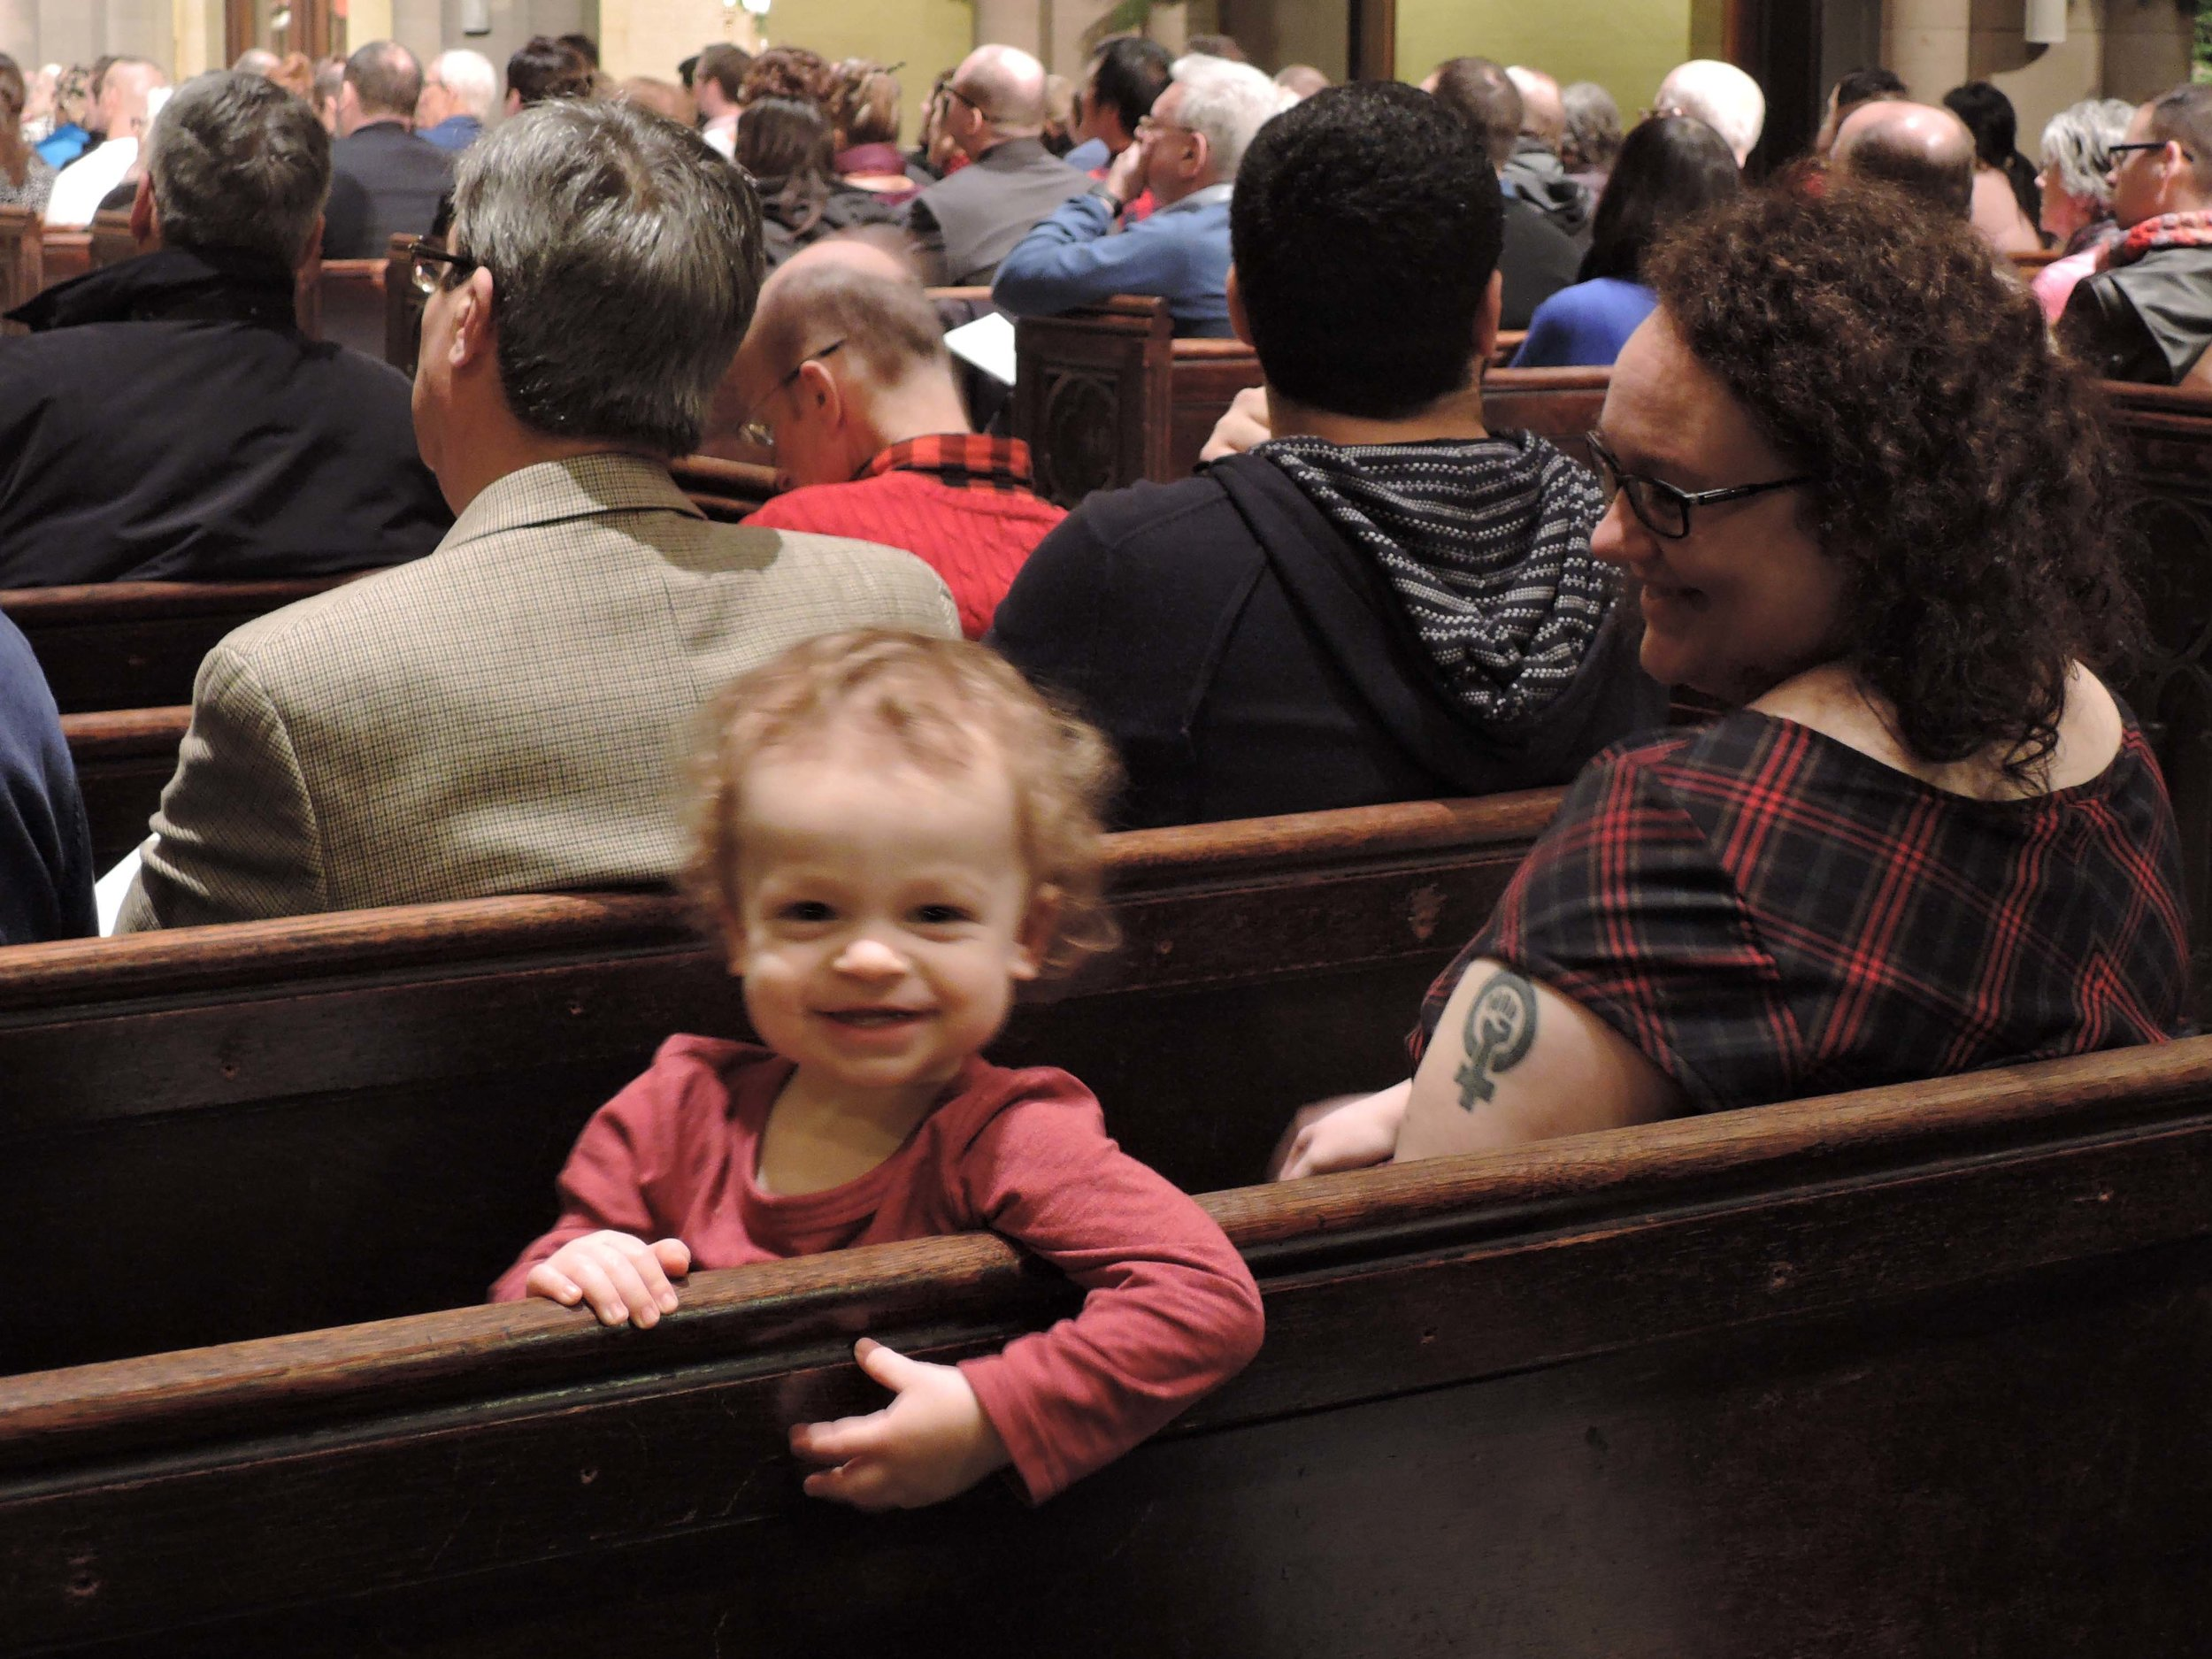 One of our younger members at the 5 PM Sung Mass.